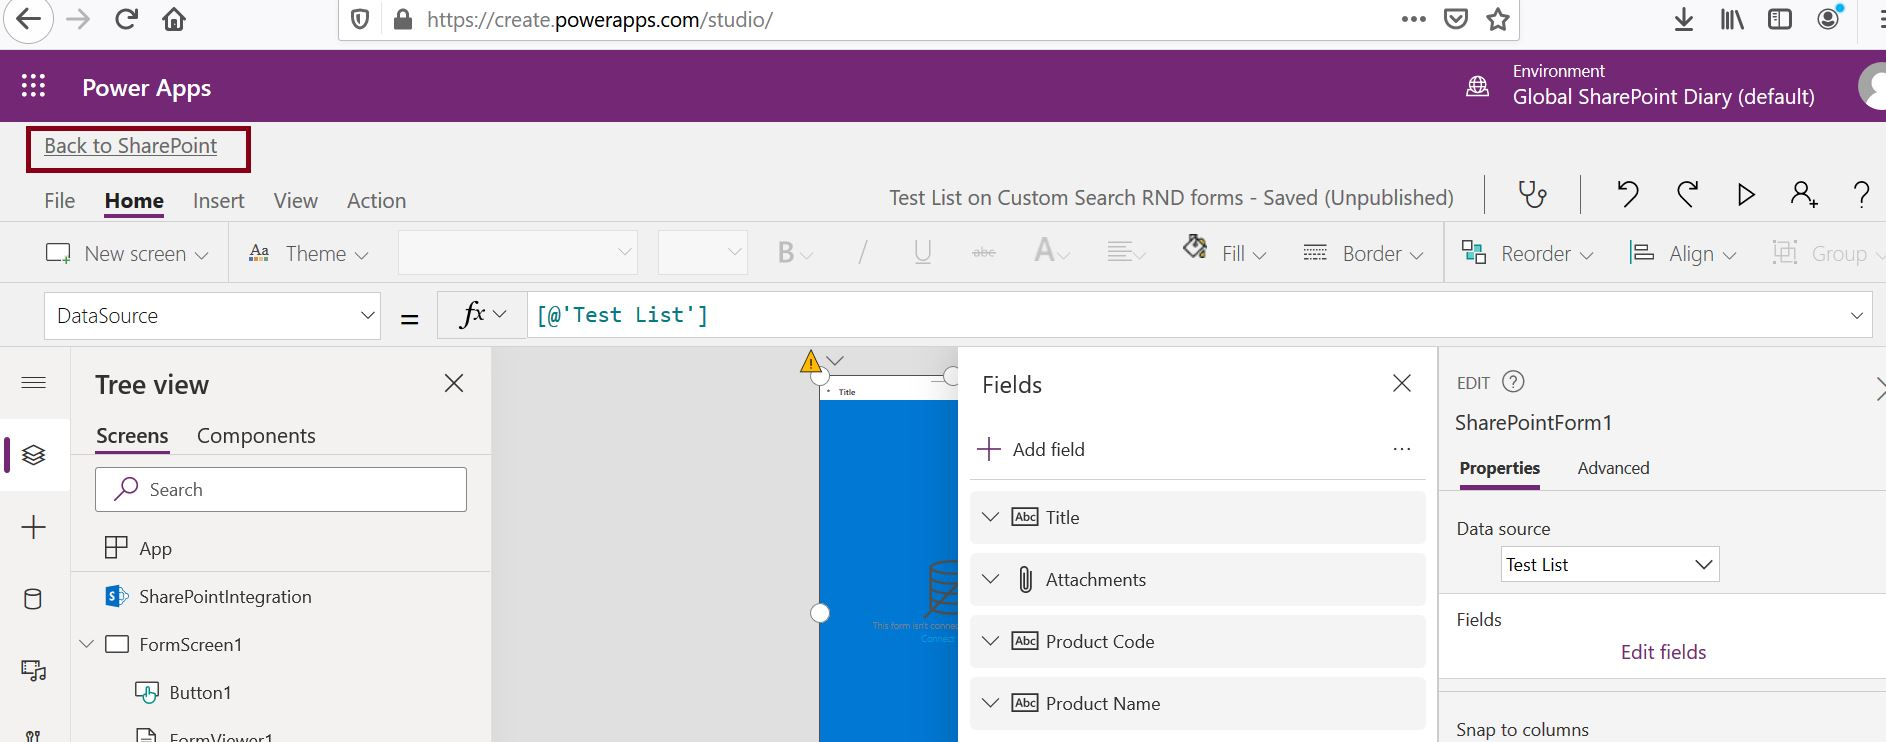 How to publish PowerApps in SharePoint Online site - Back to SharePoint